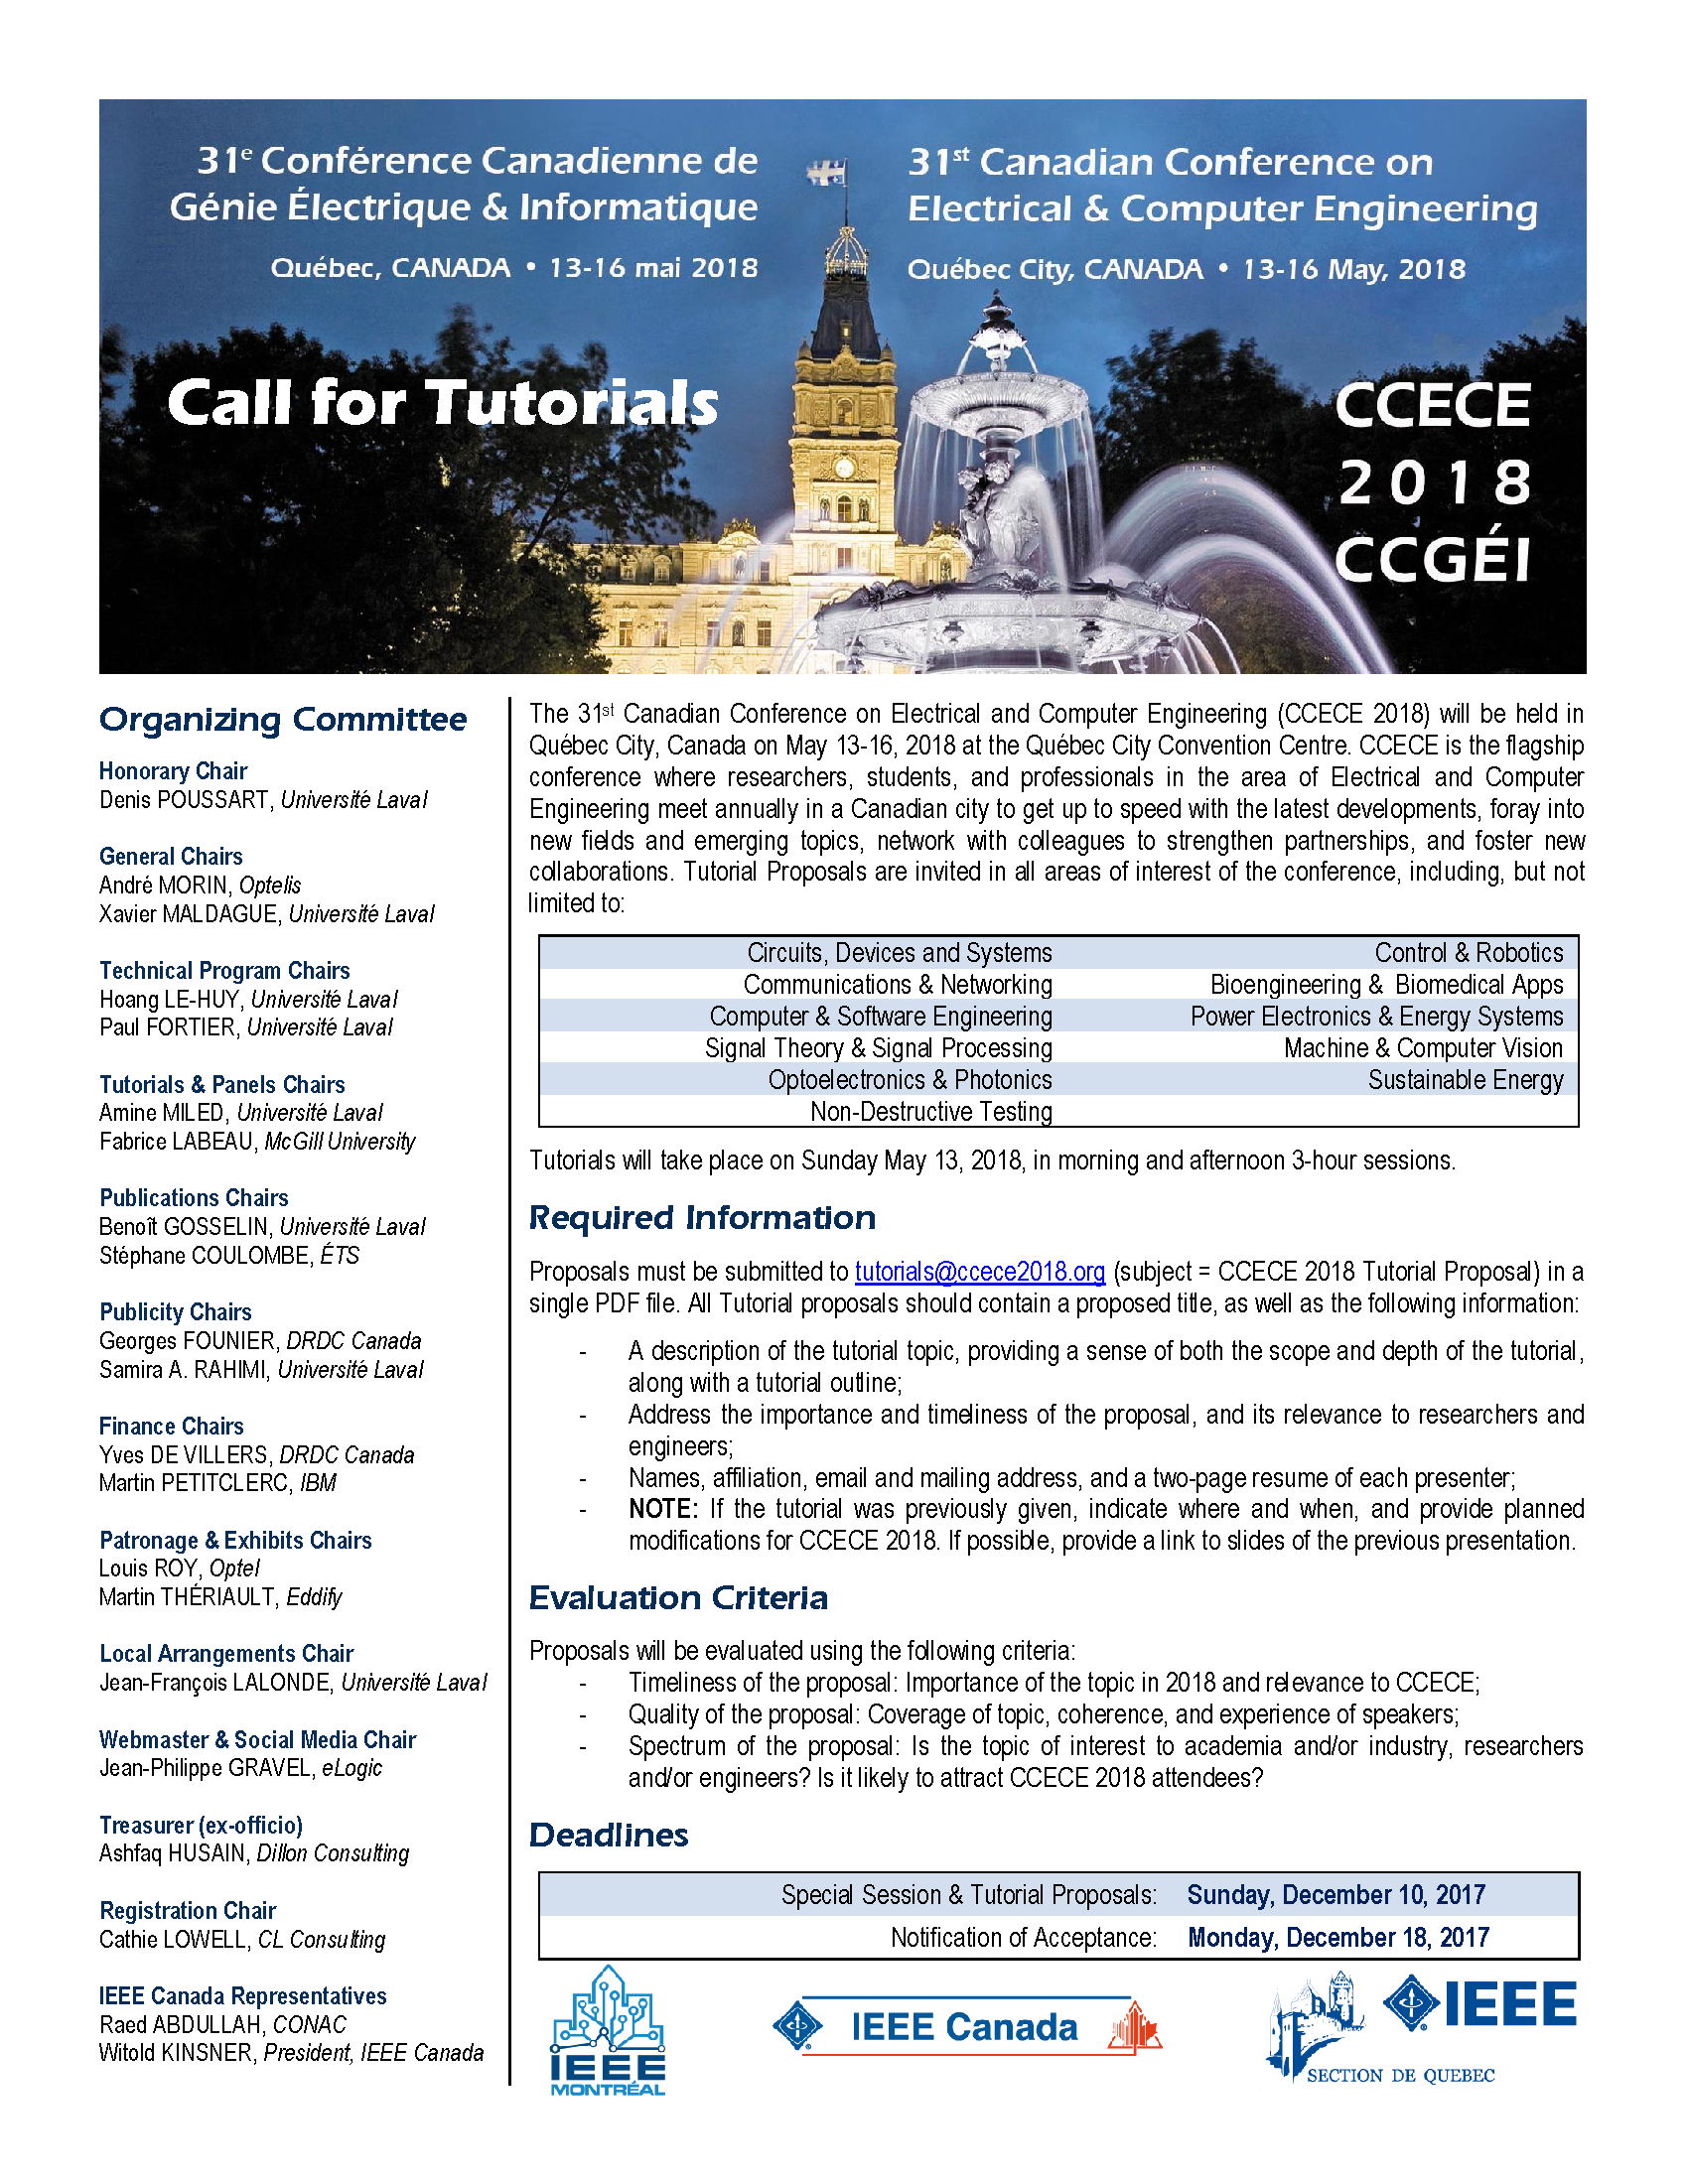 CCECE 2018 - Call for Tutorials